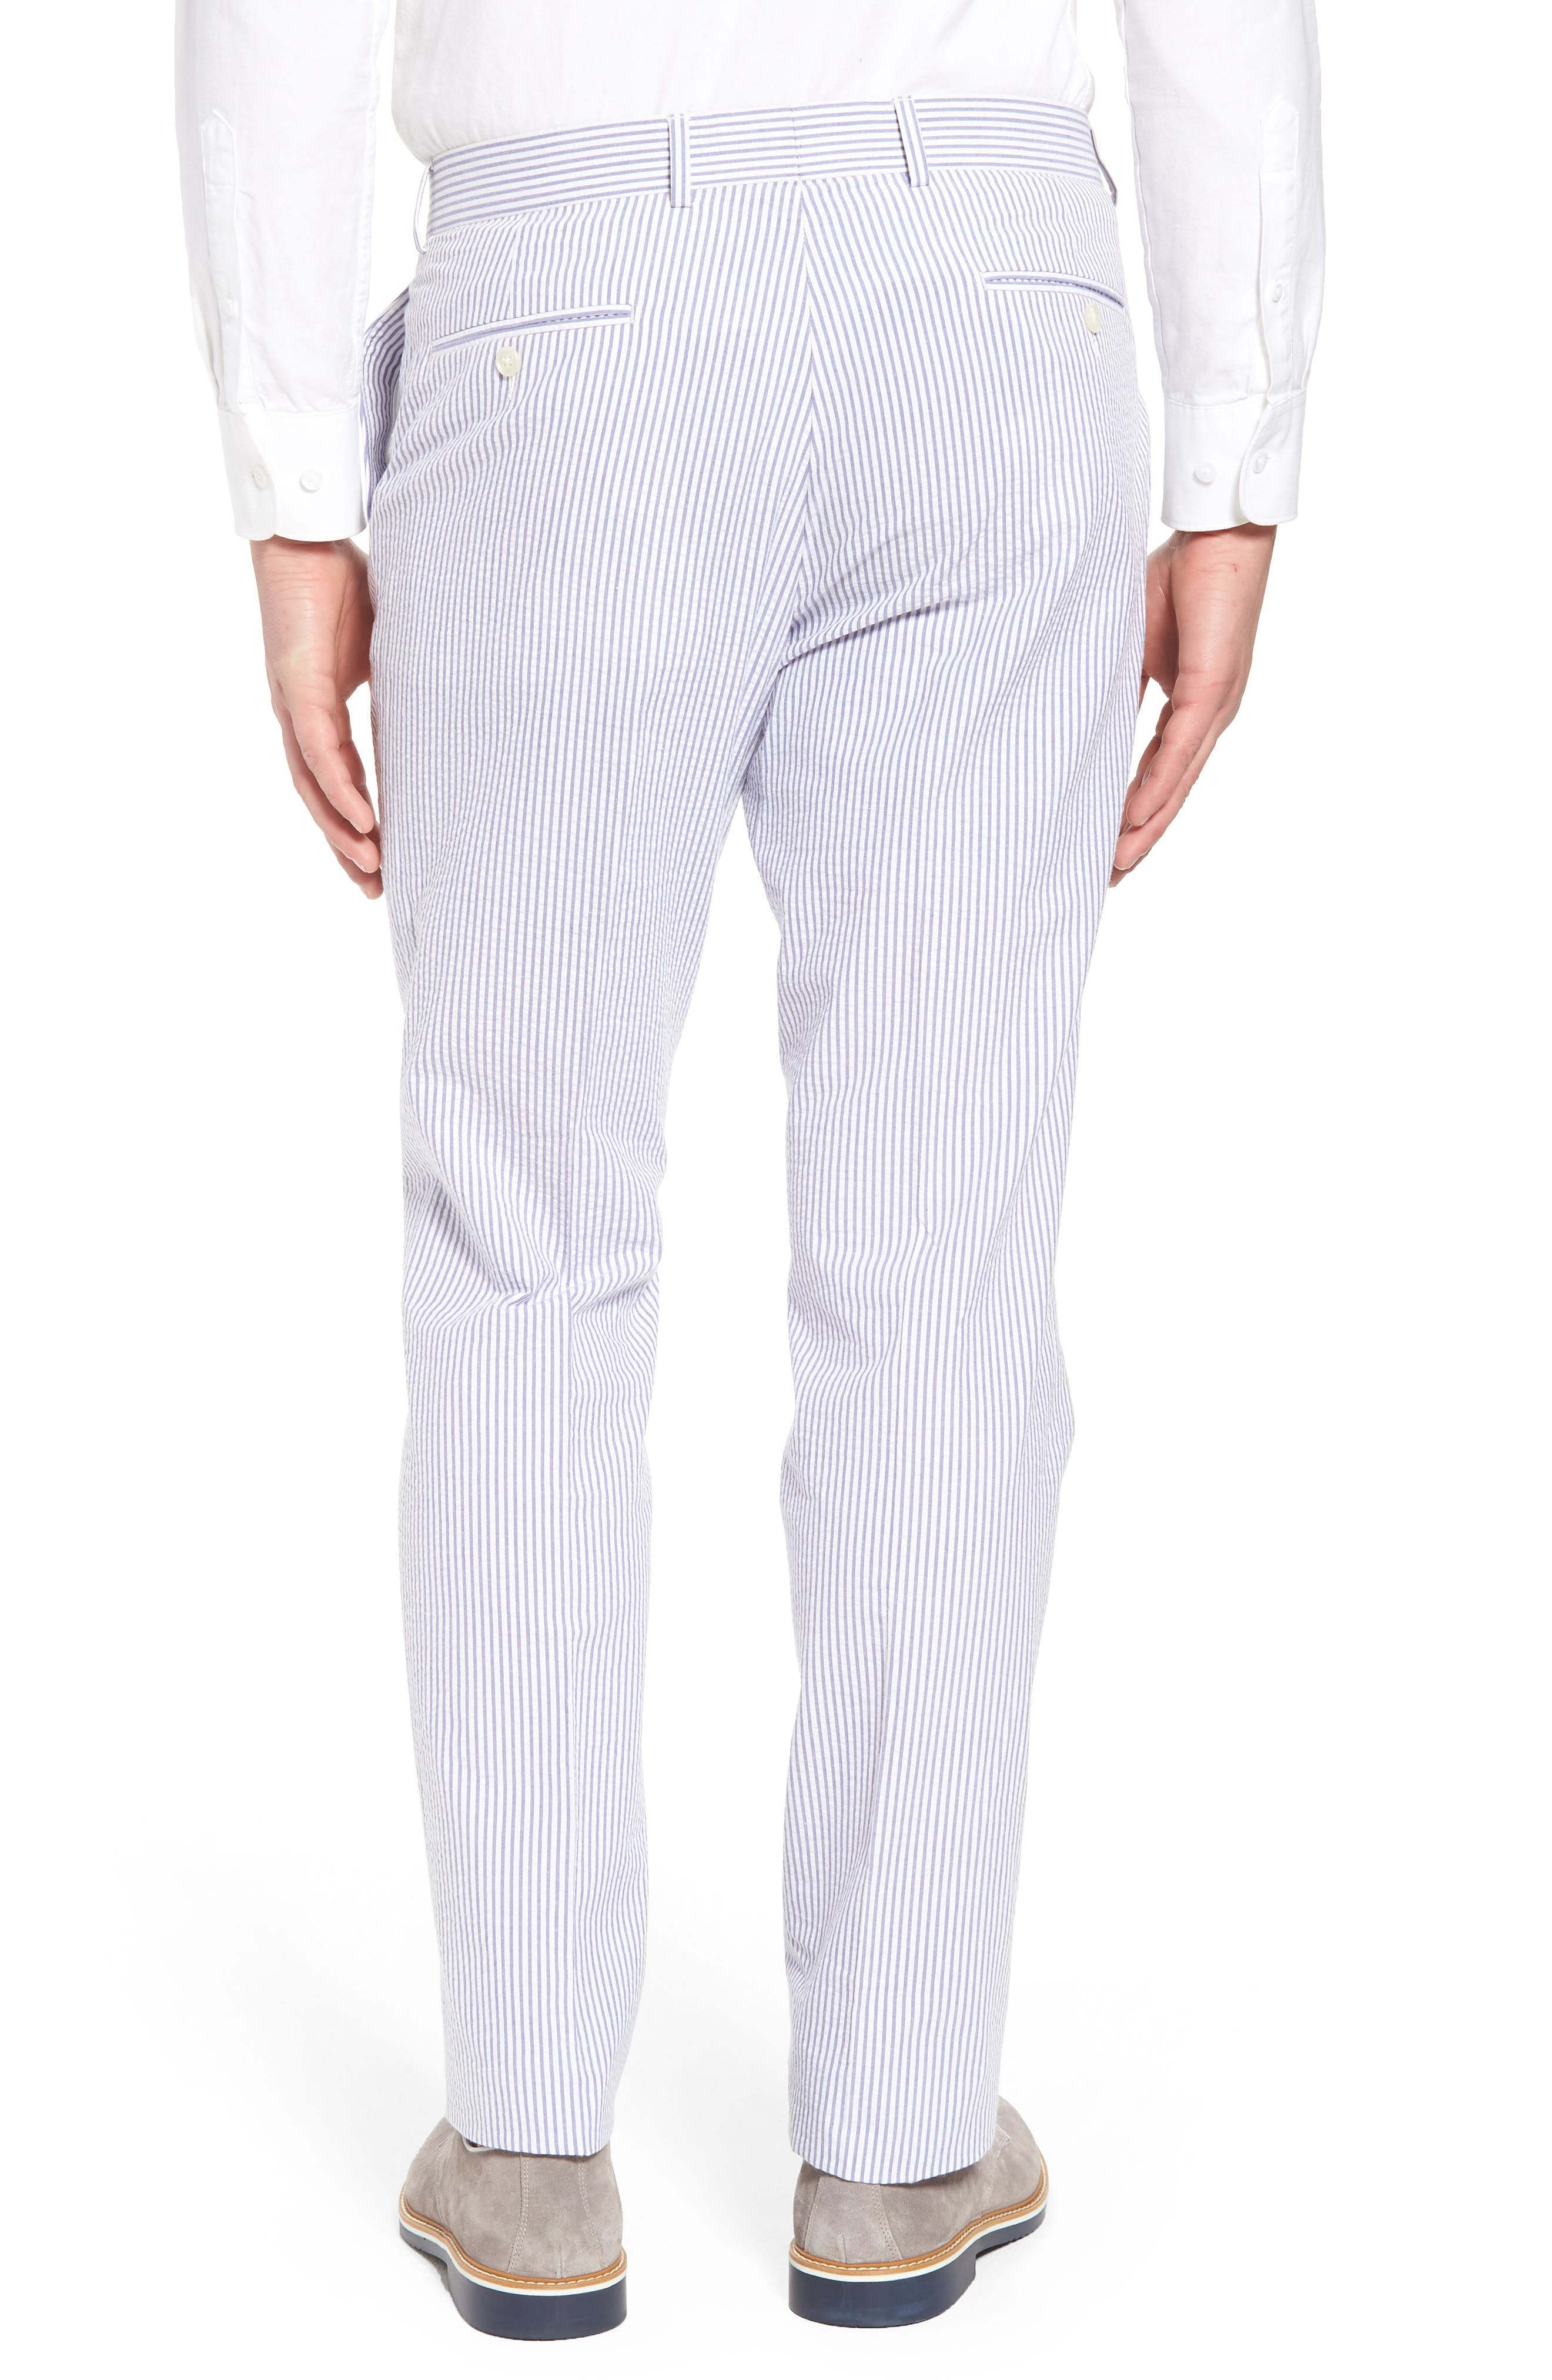 Andrew AIM Flat Front Seersucker Trousers,                             Alternate thumbnail 2, color,                             Blue And White